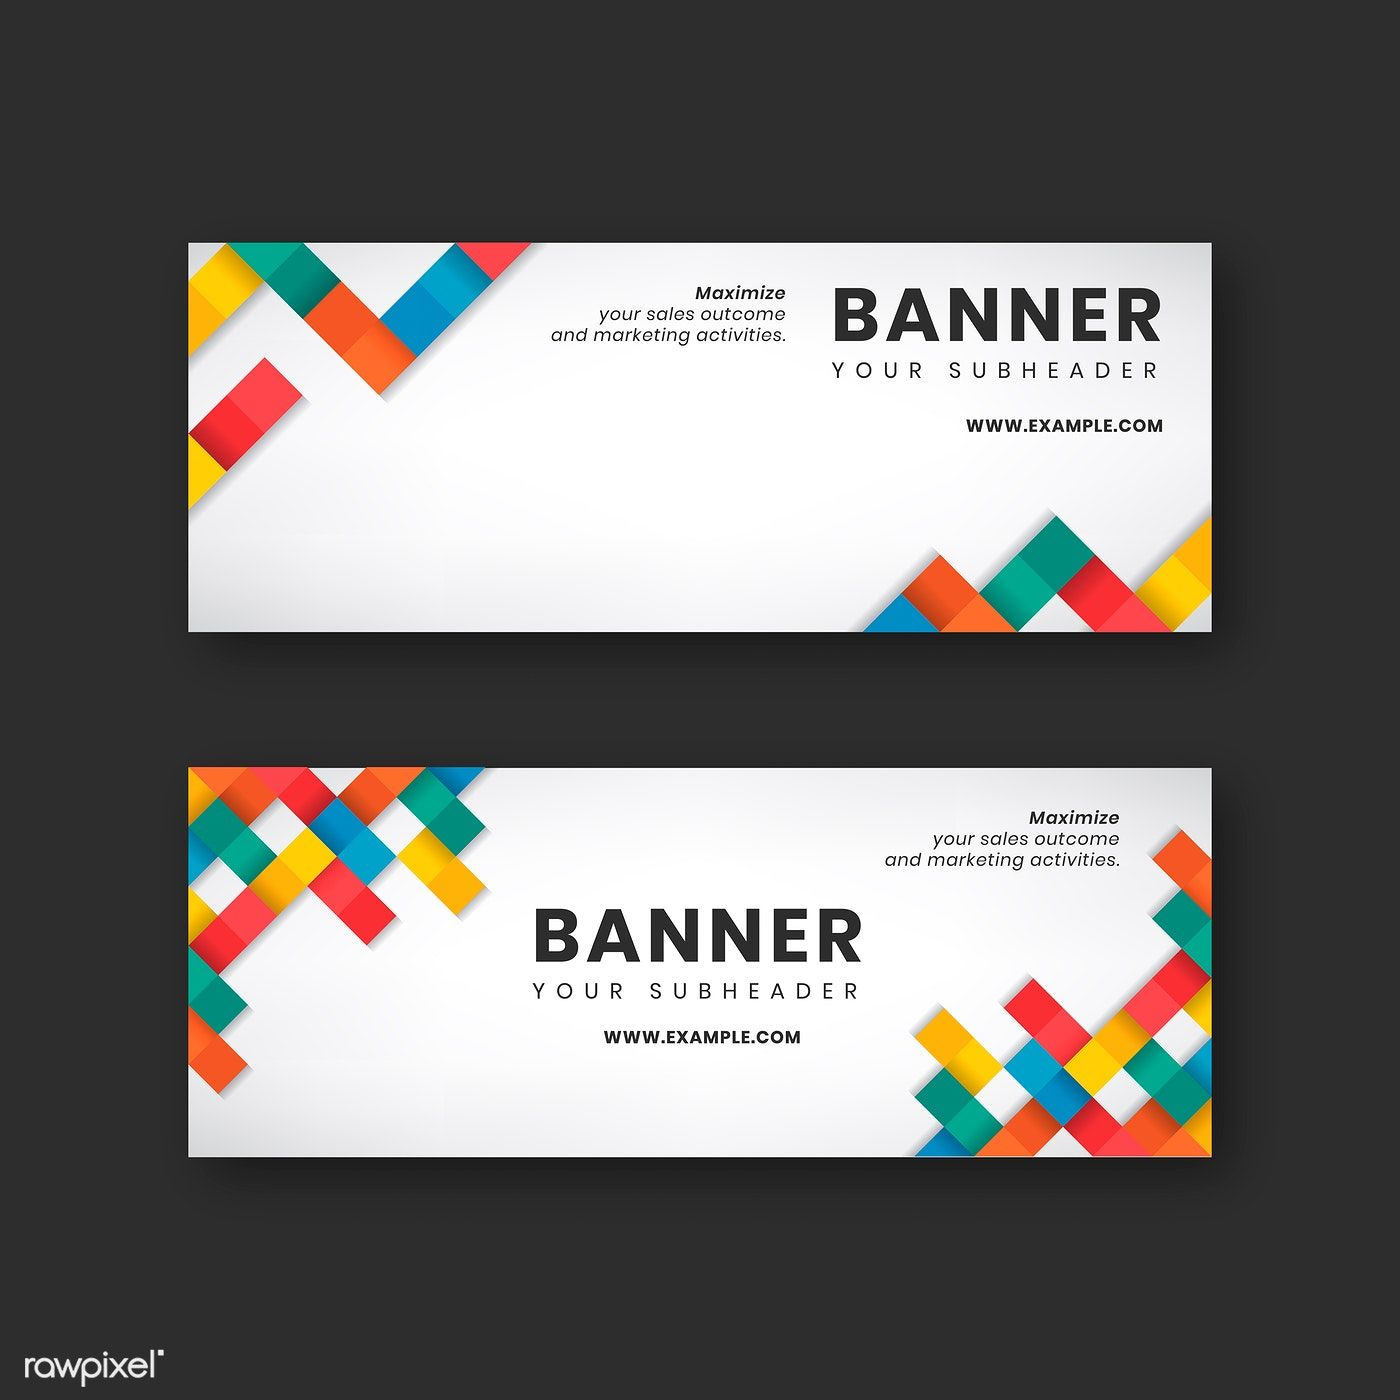 Colorful Website Banner Design Vector Set Free Image By Rawpixel Com Website Banner Design Website Banner Banner Design